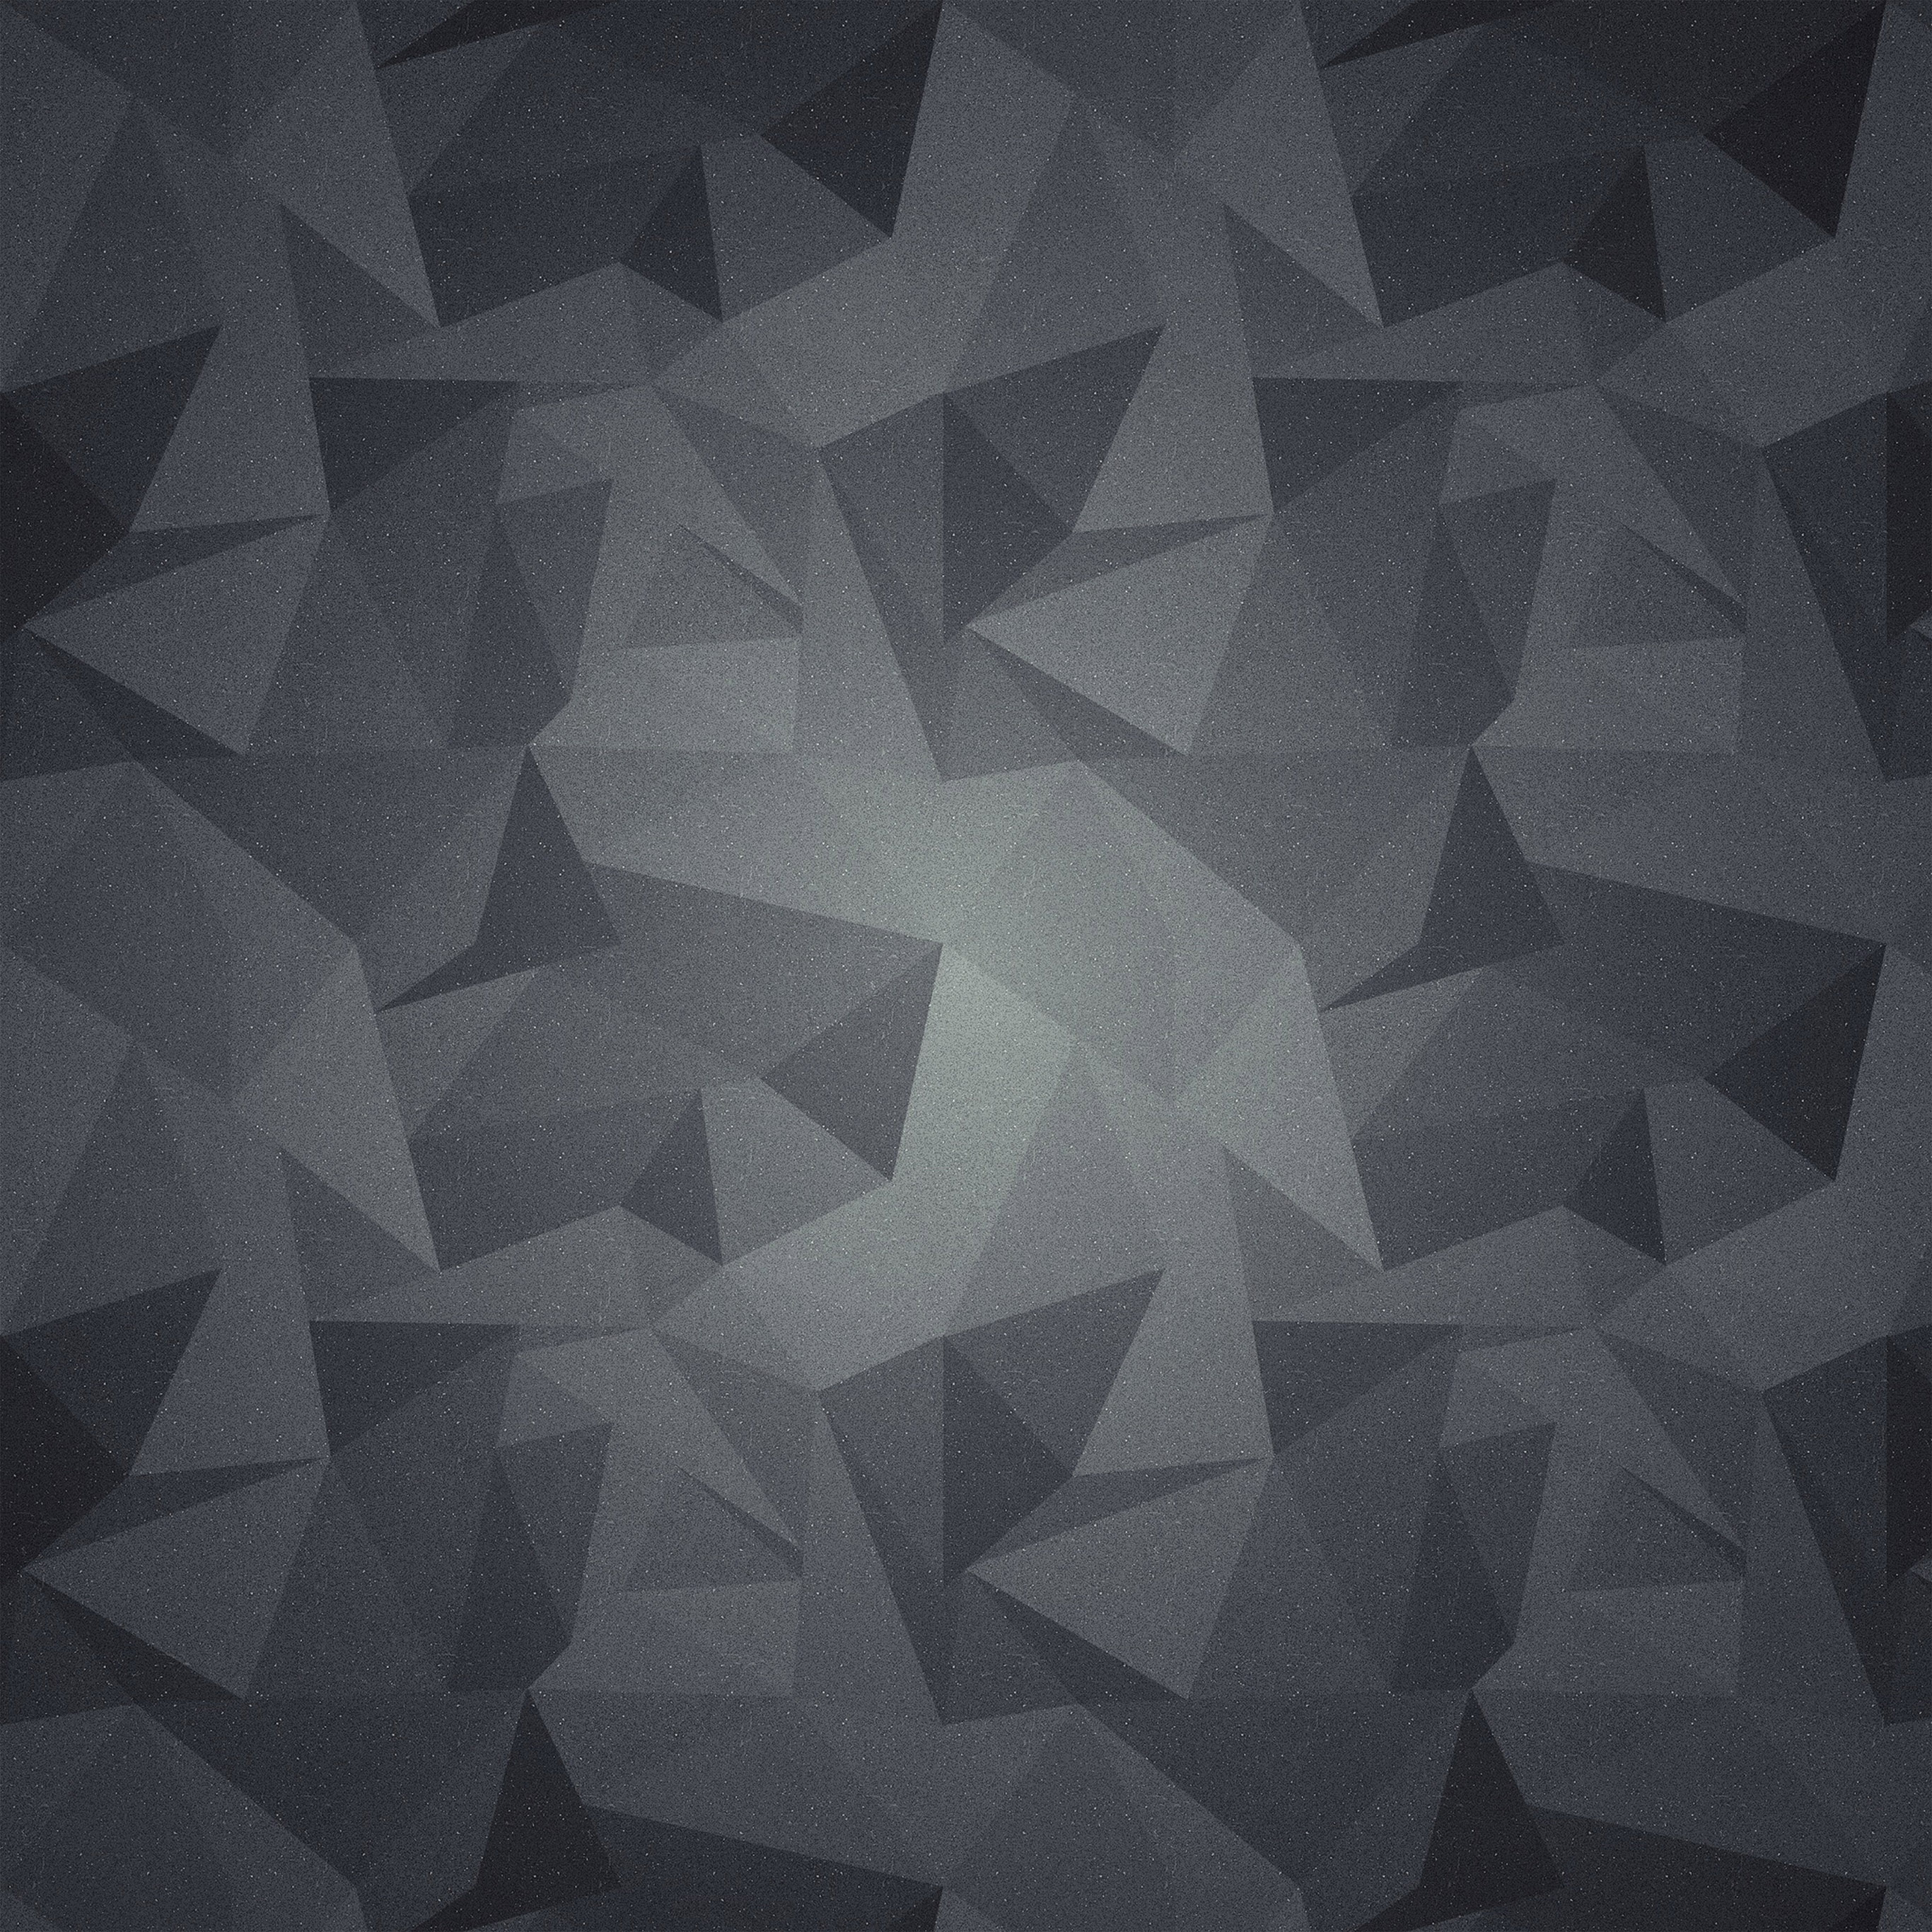 Androidpapersco Android Wallpaper Vt28 Abstract Polygon Dark Bw